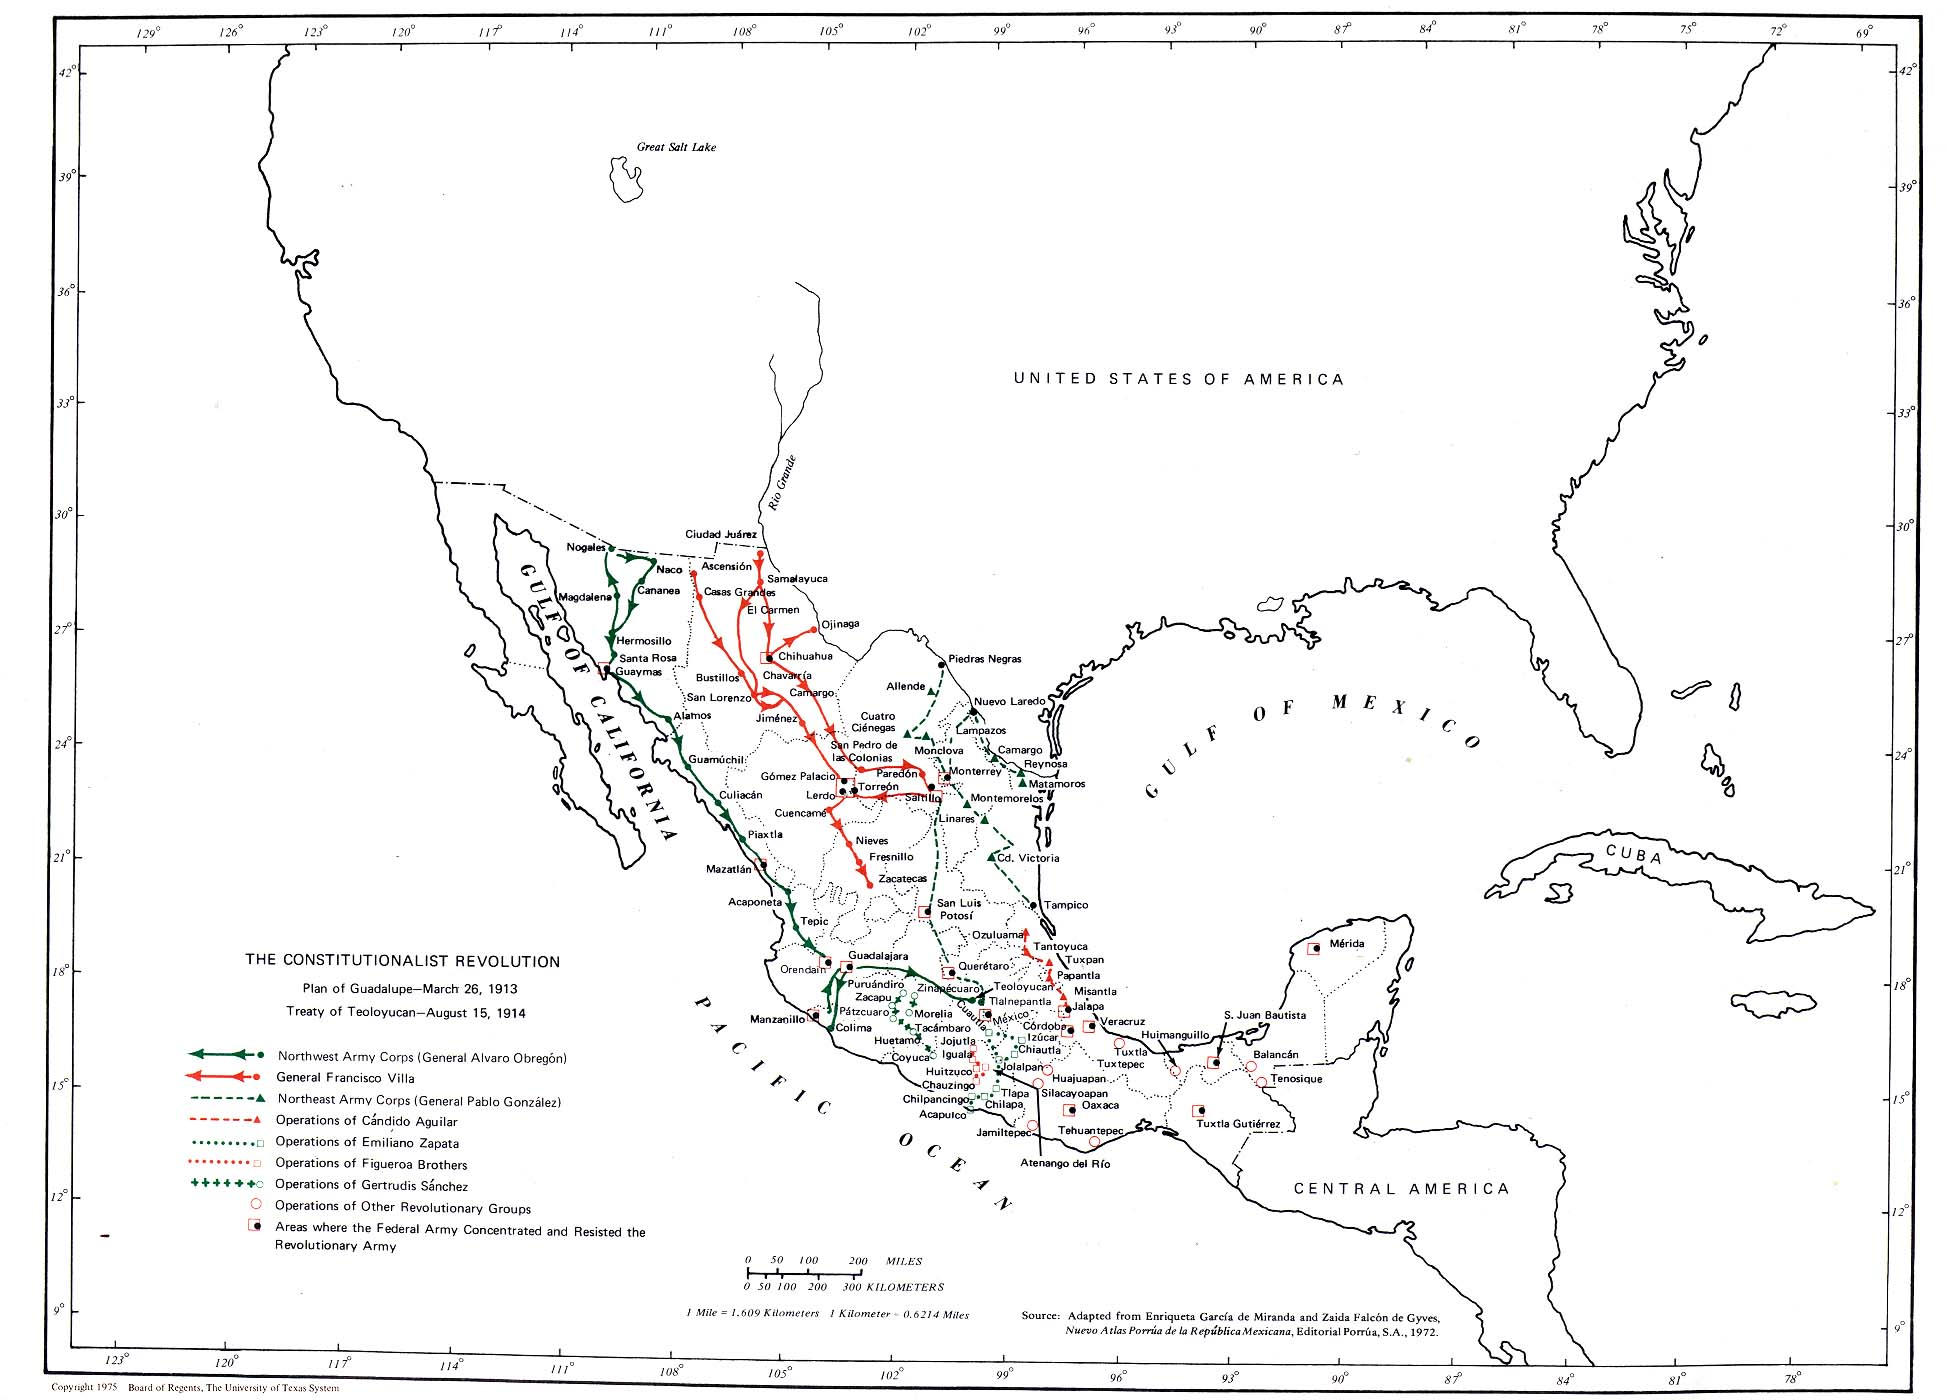 The Constitutionalist Revolution Map, Mexico